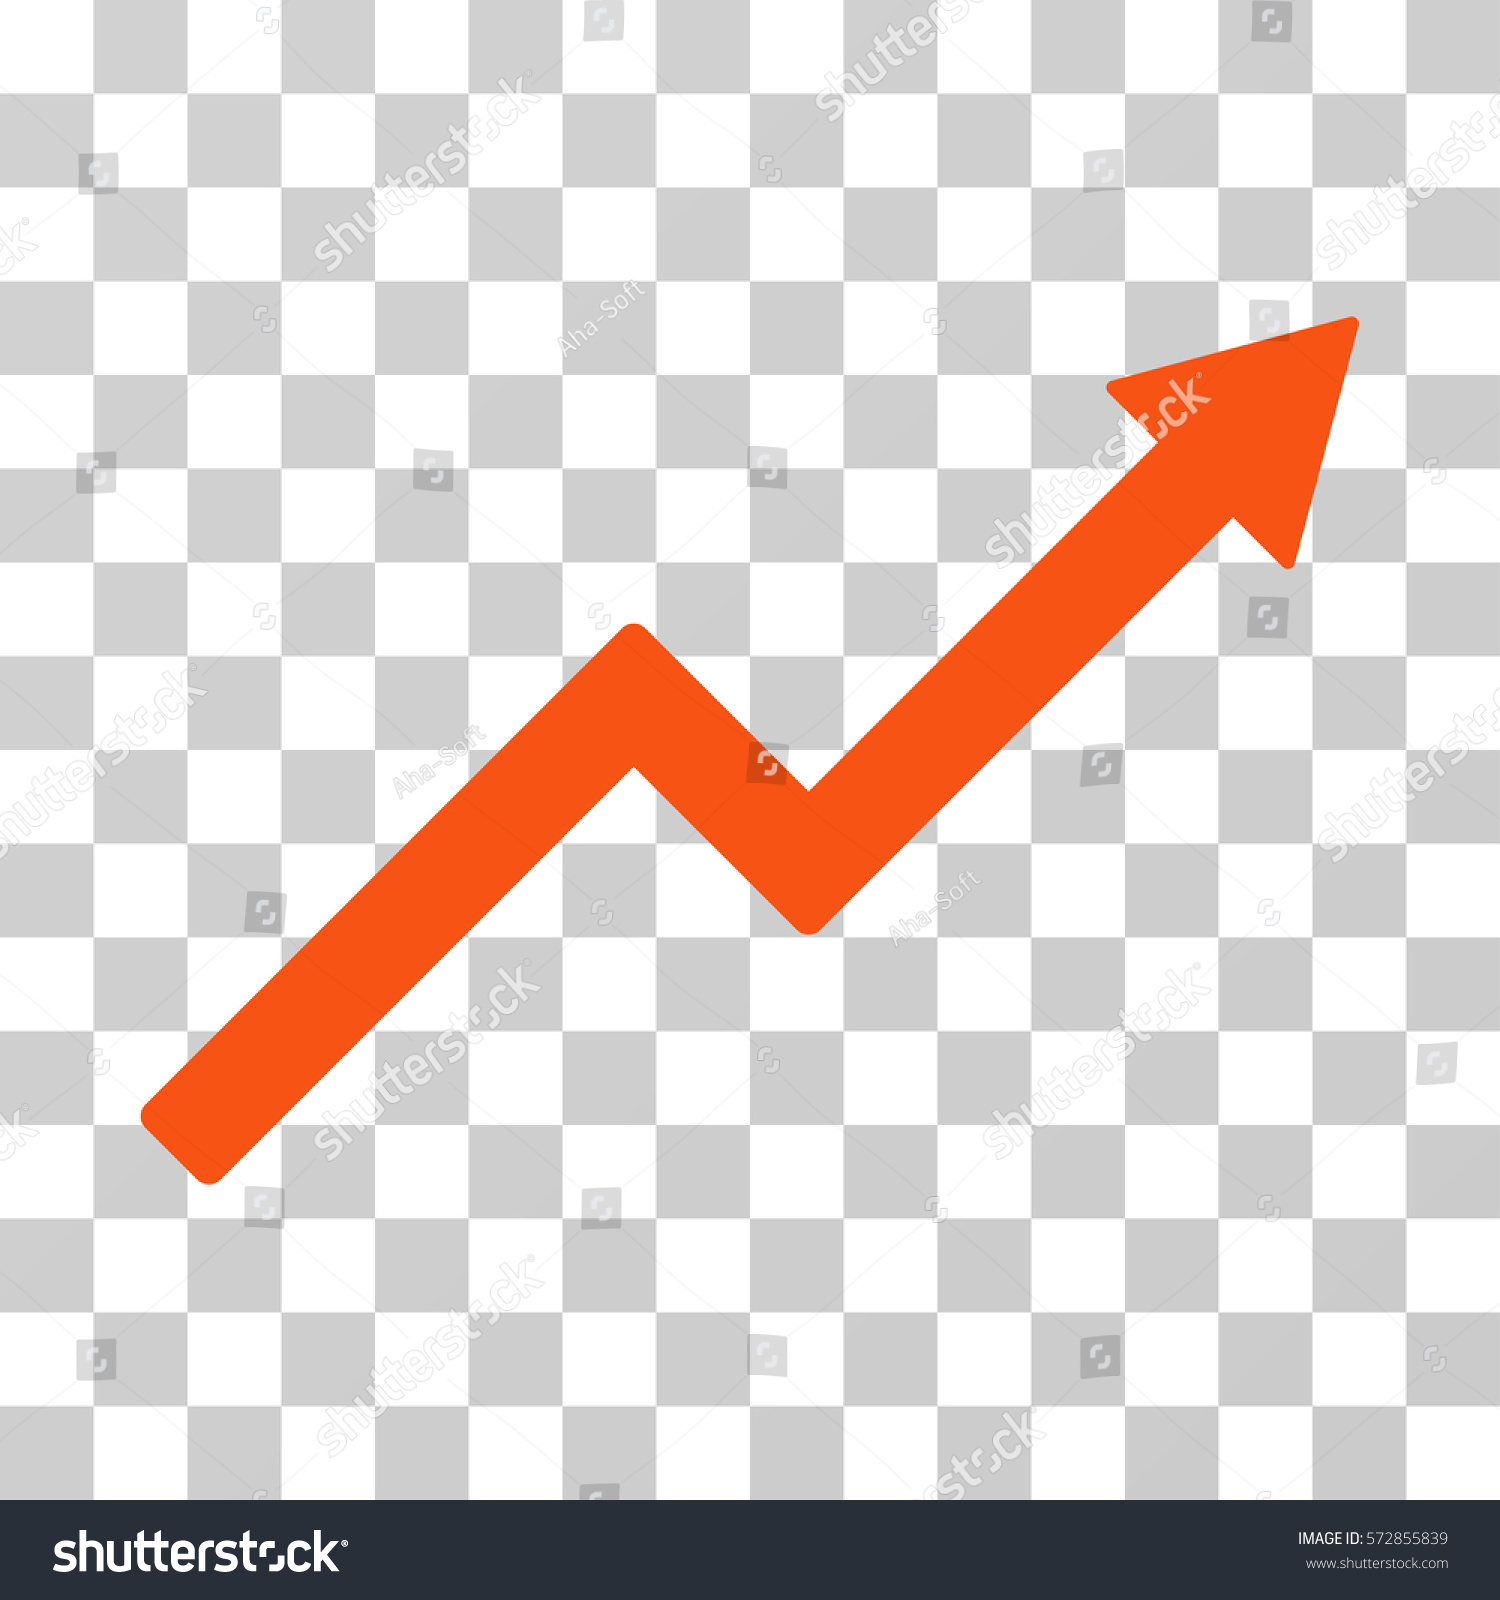 Growth trend chart icon vector illustration stock vector 572855839 growth trend chart icon vector illustration style is flat iconic symbol orange color nvjuhfo Images